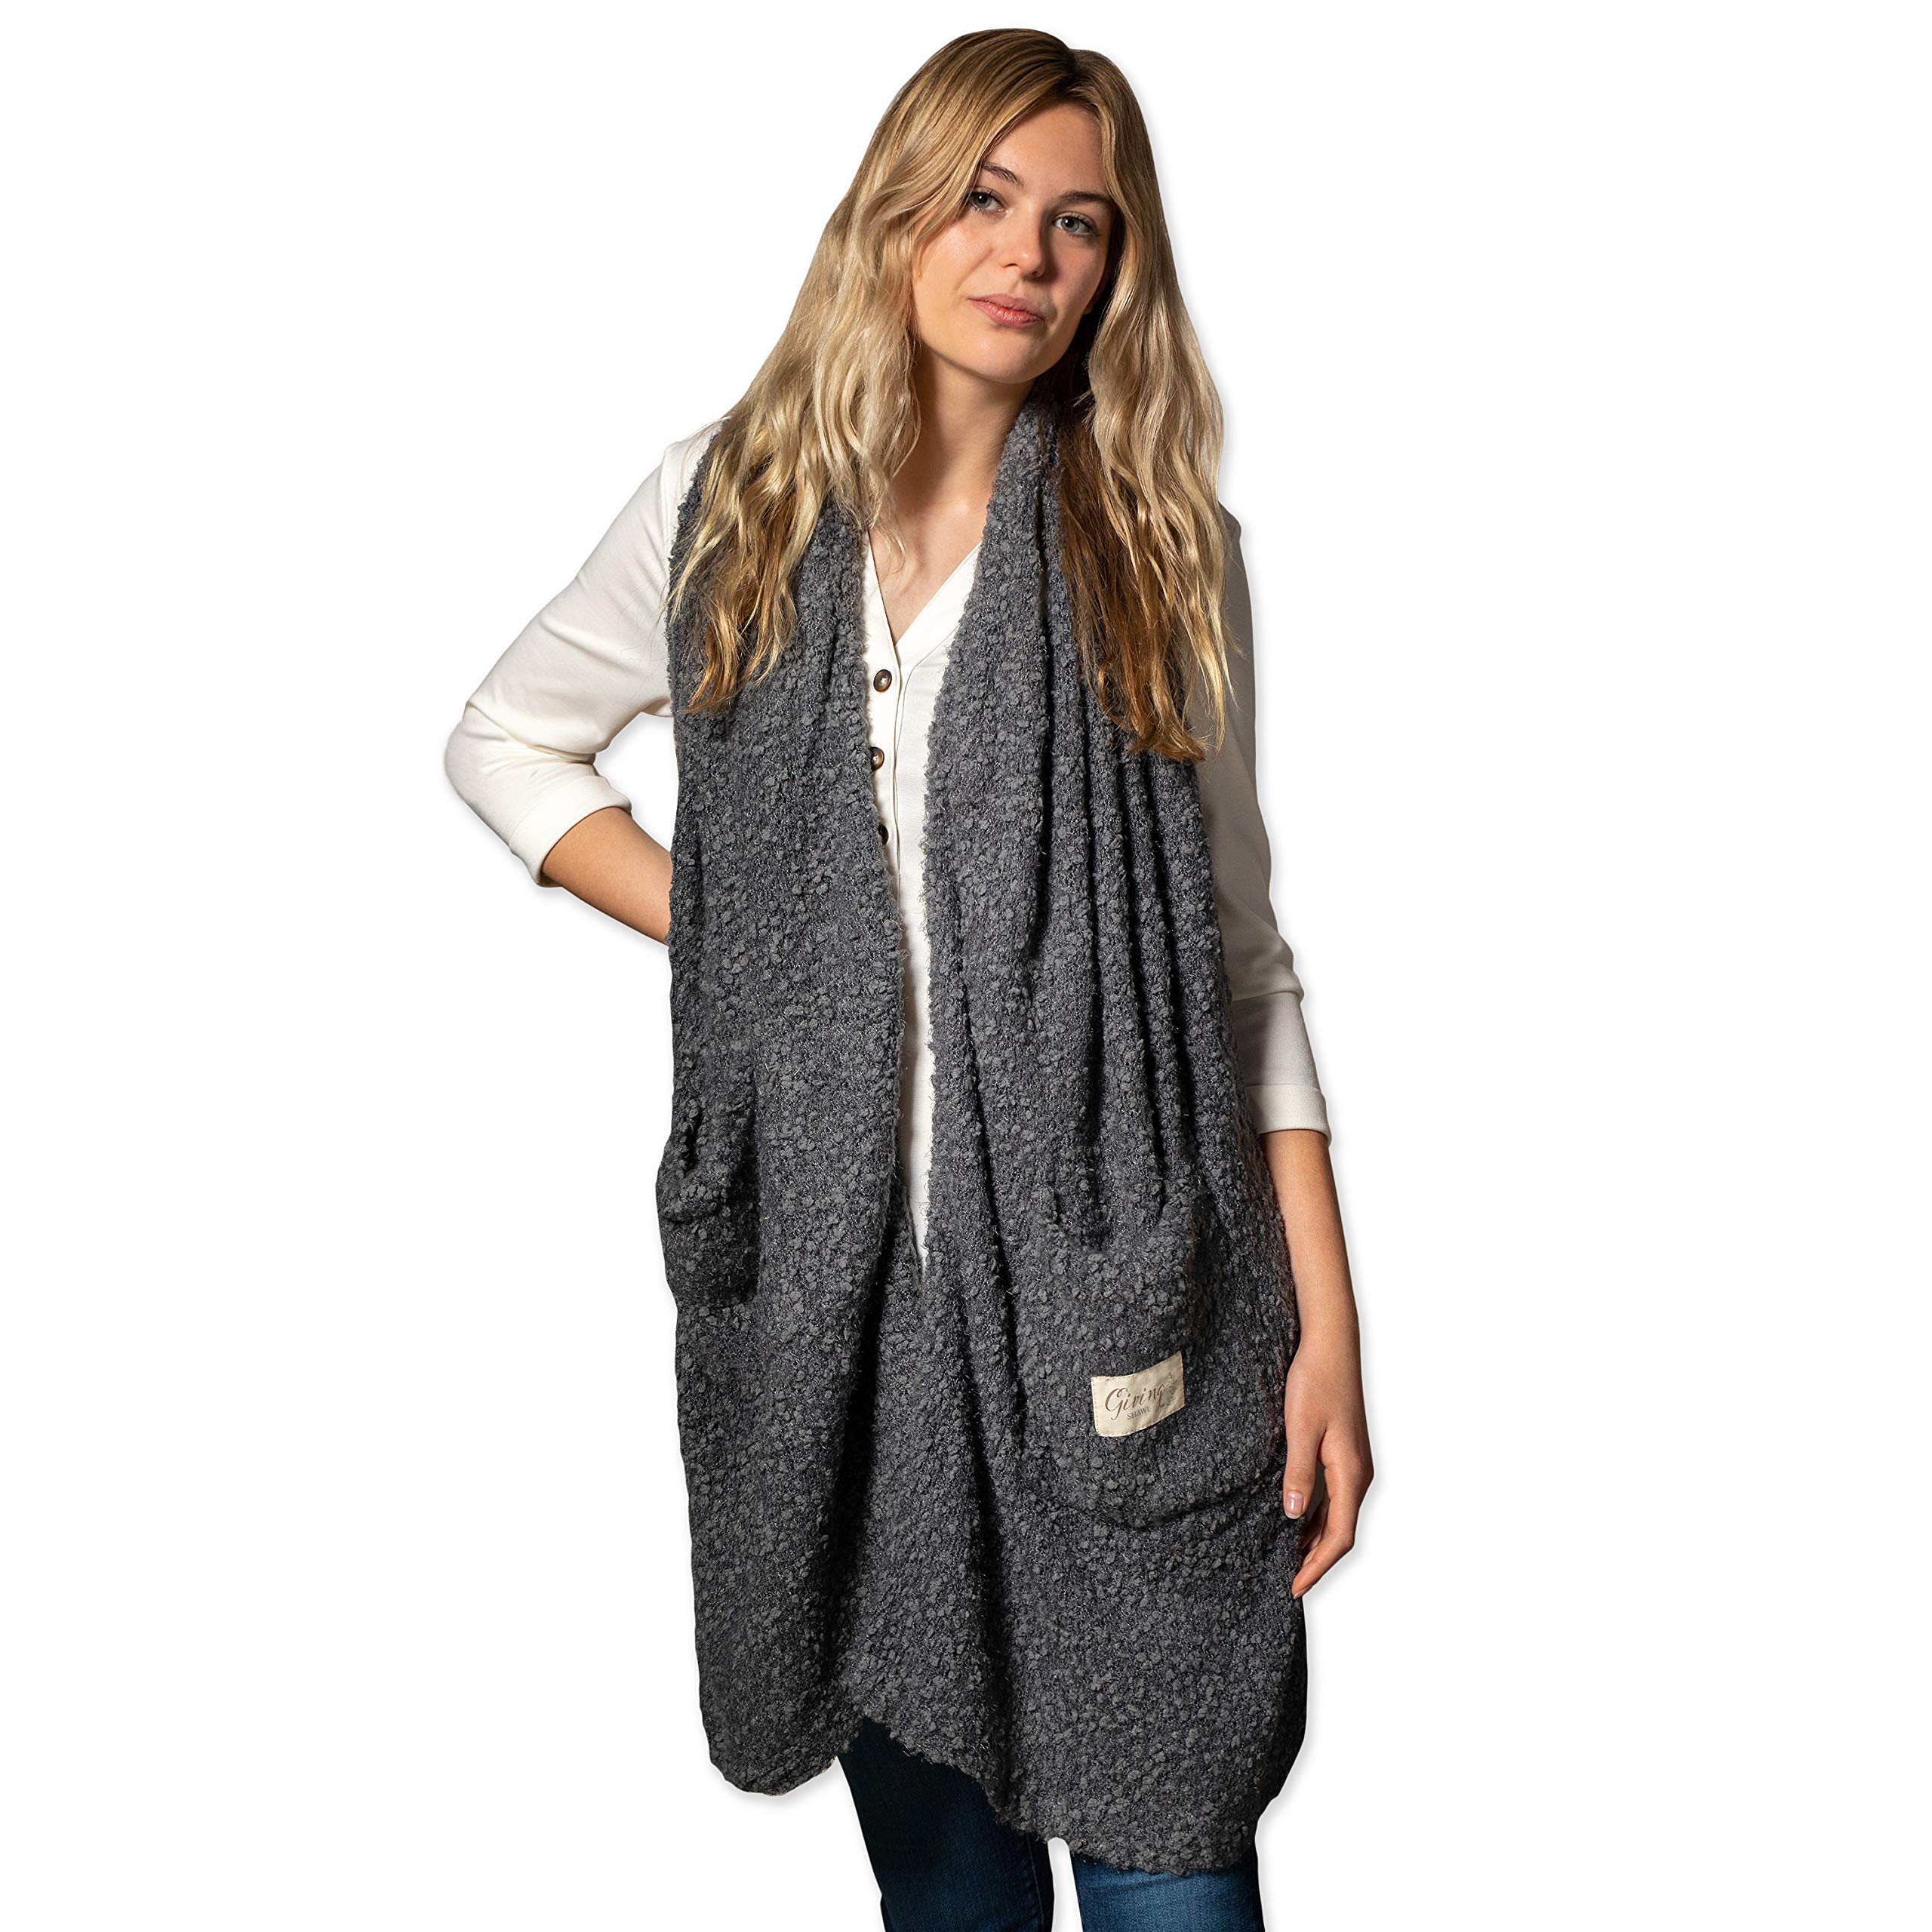 Women's One Size Soft Knit Nylon Giving Shawl Wrap in Gift Box